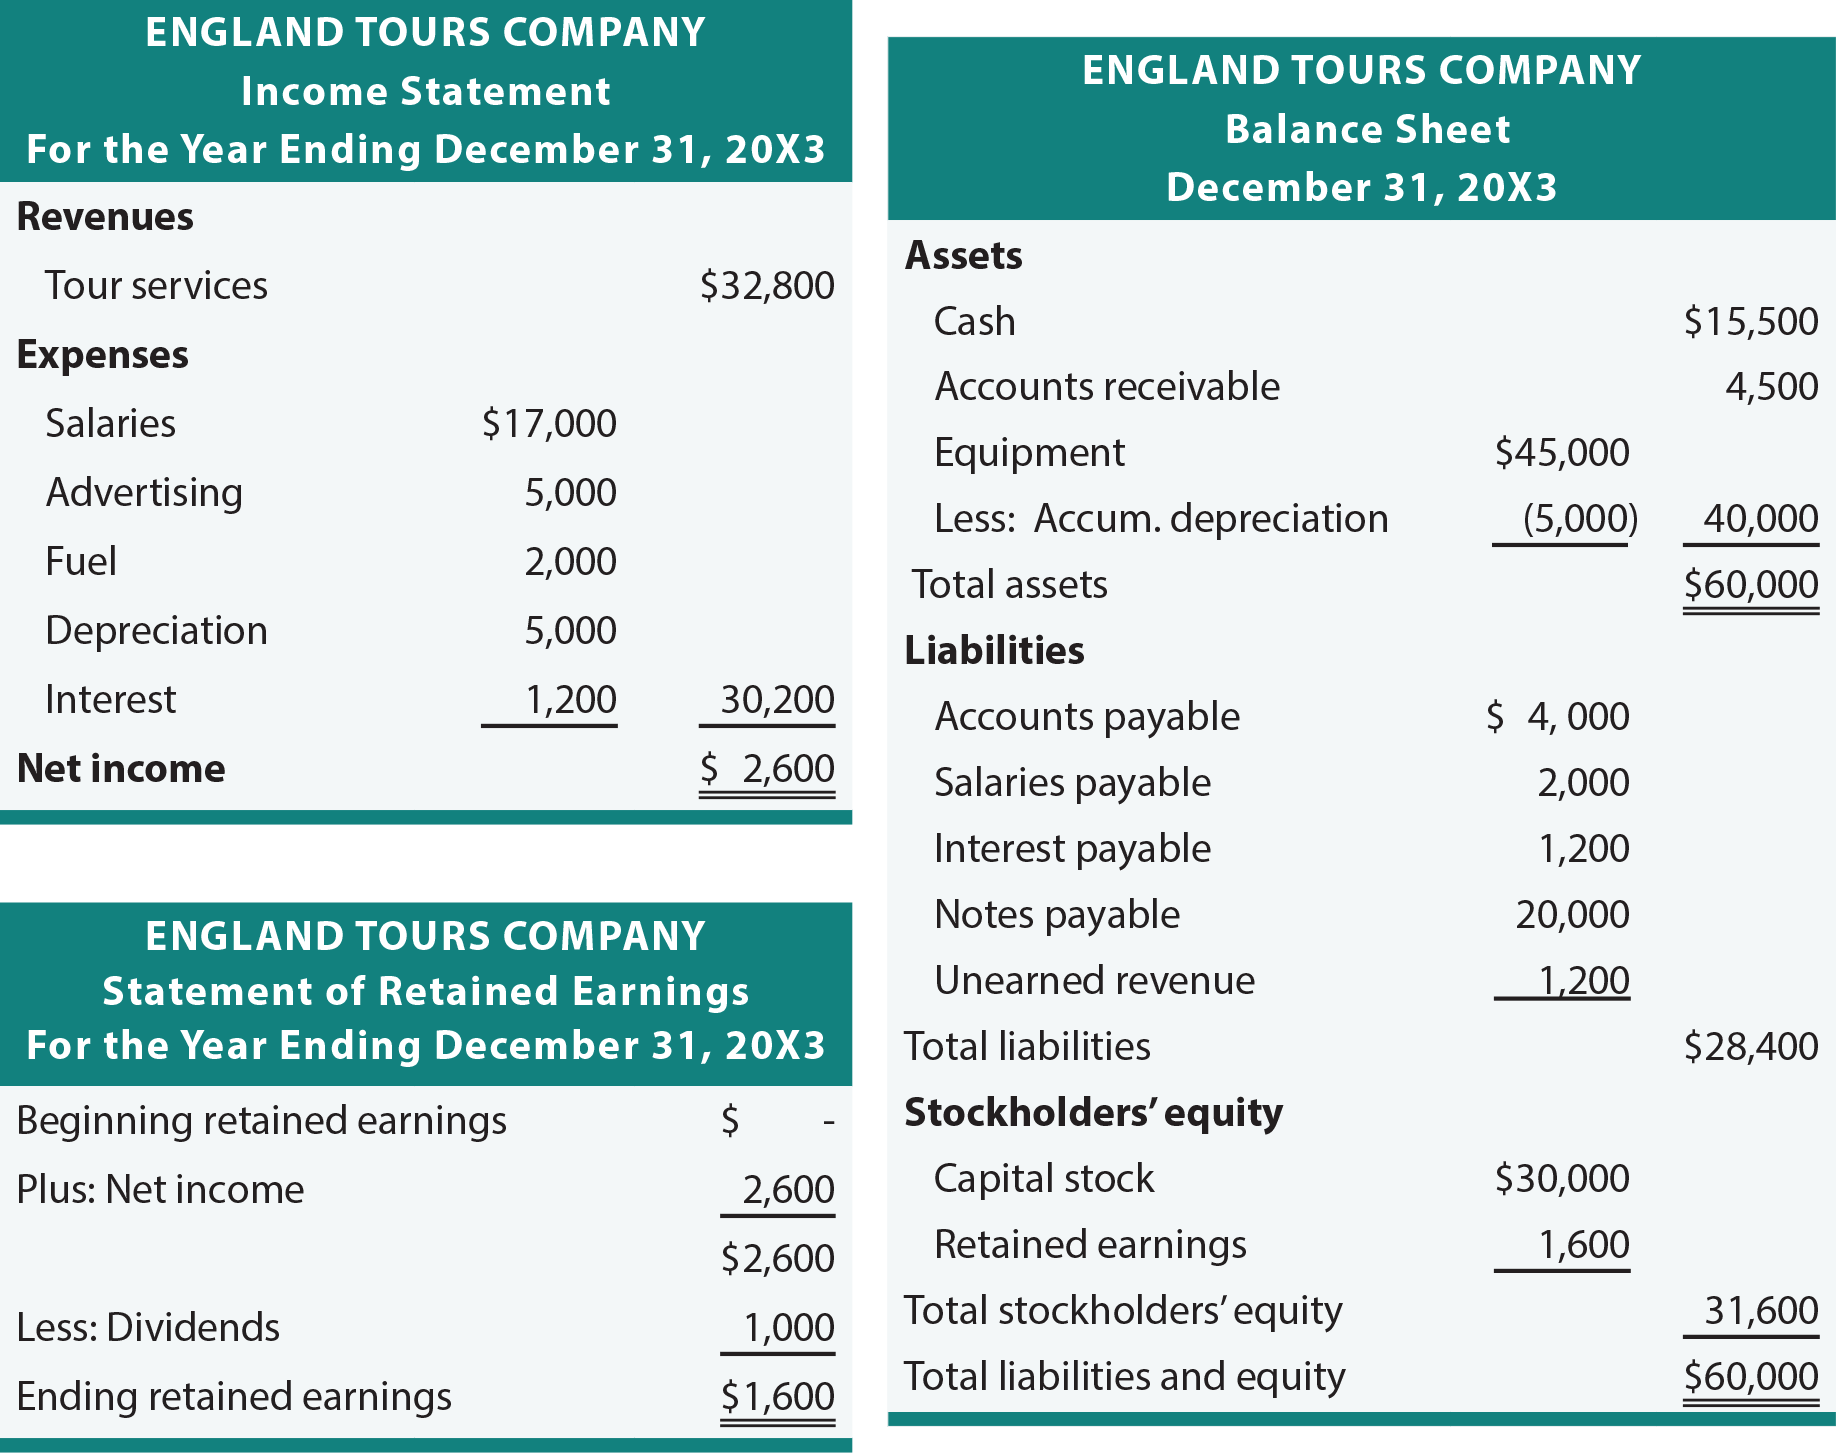 England Tours Income Statement and Balance Sheet